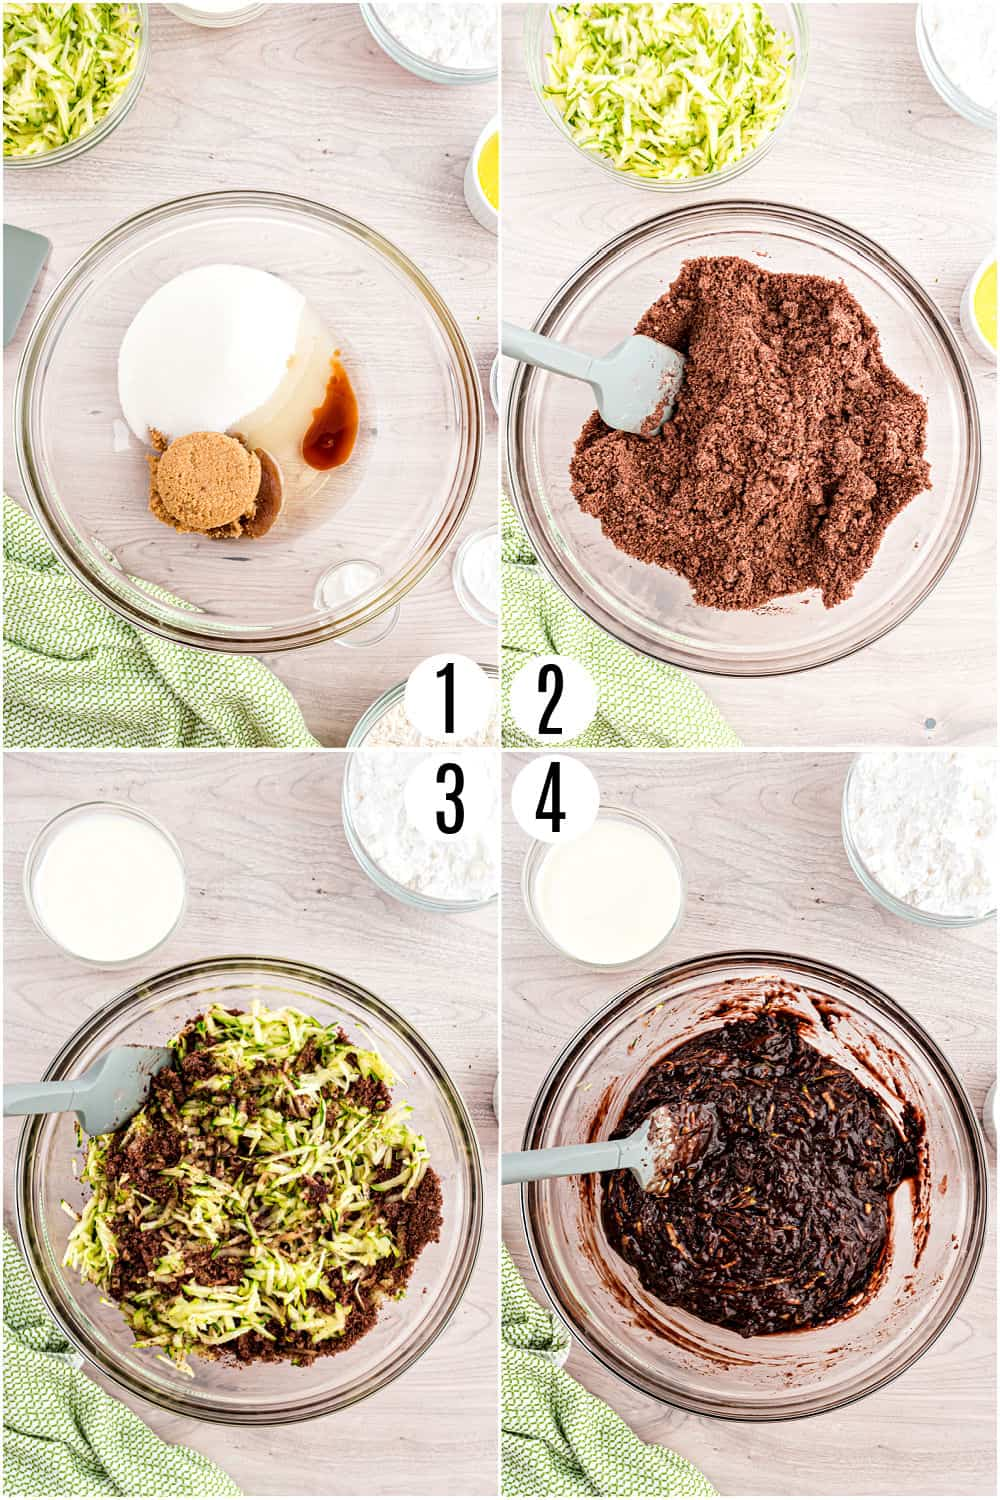 Step by step photos showing how to make double chocolate zucchini brownies.